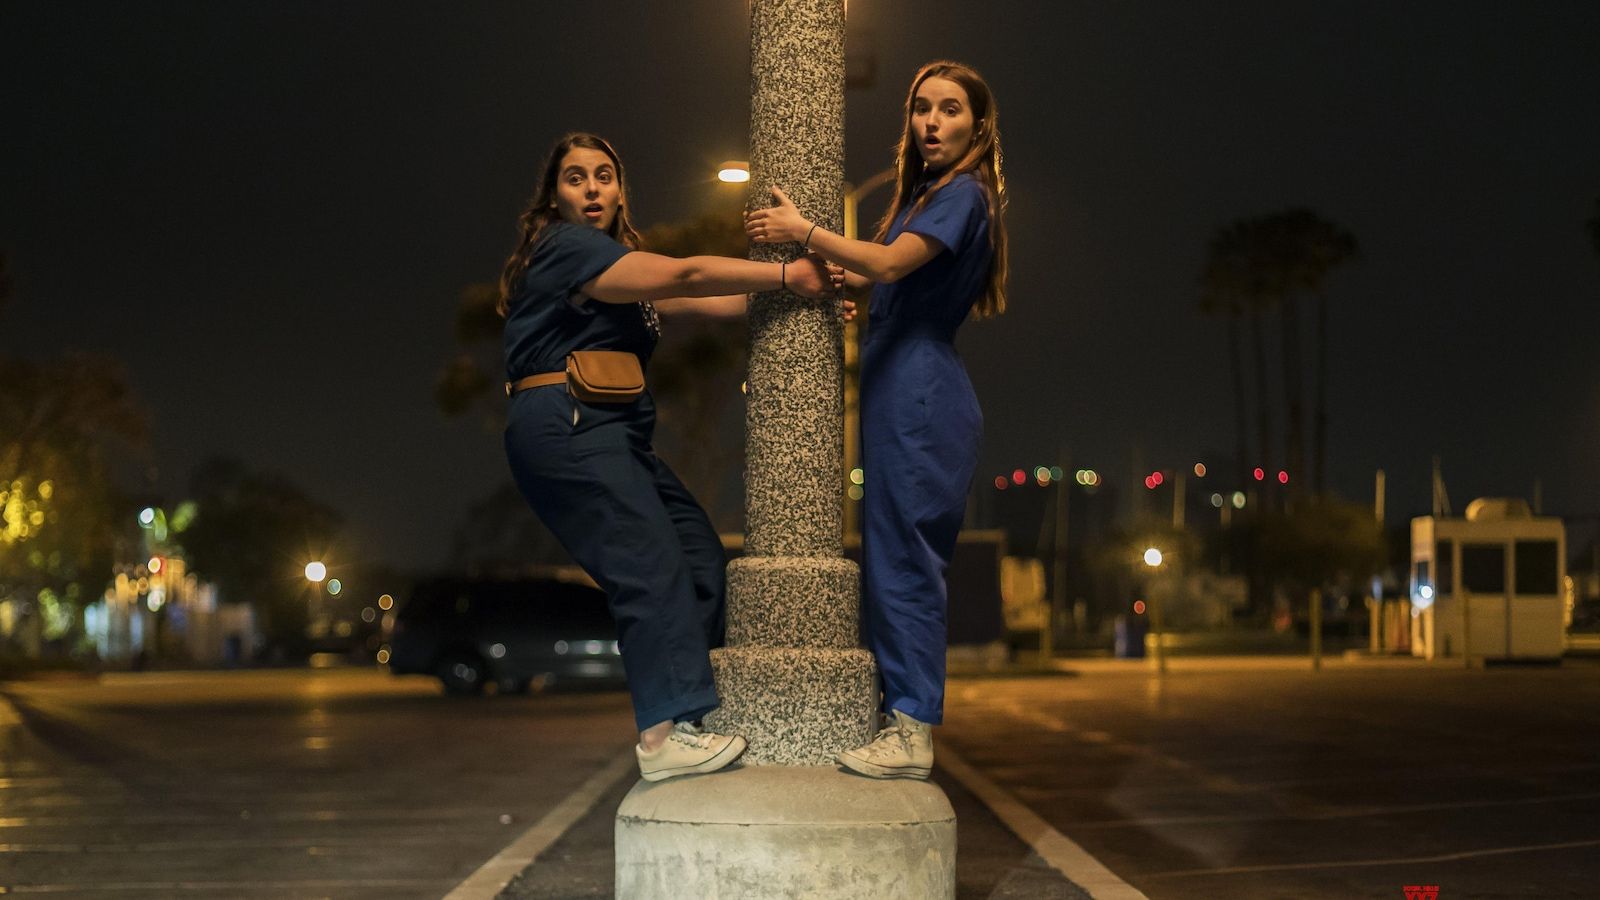 Two little girls cling to a lamppost.